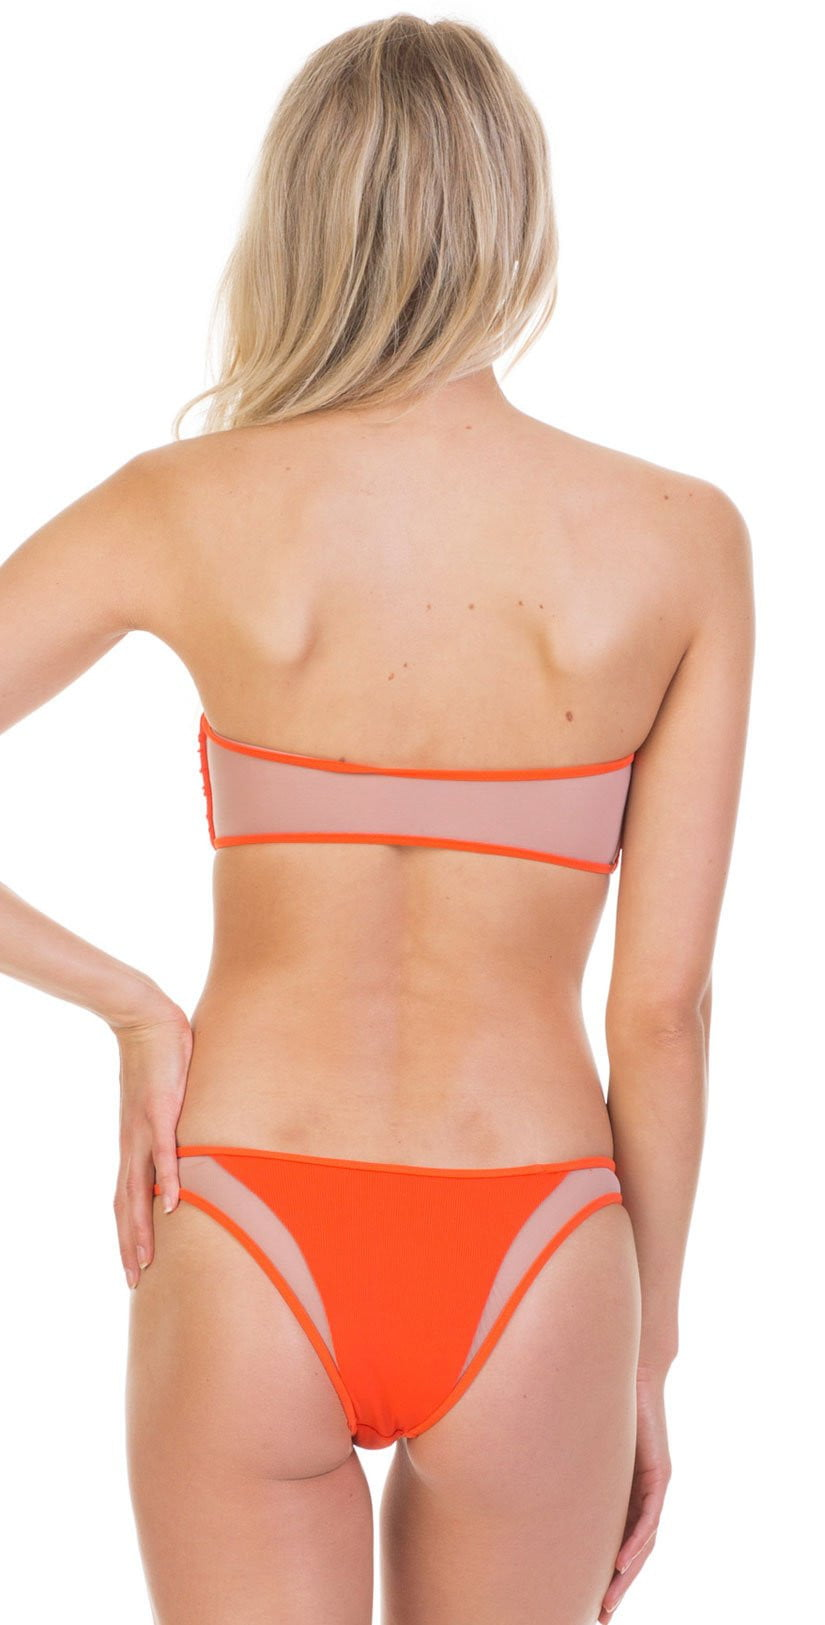 Tori Praver Fine Rib Royale Top In Hot Orange 1S19STRONR-HTO: